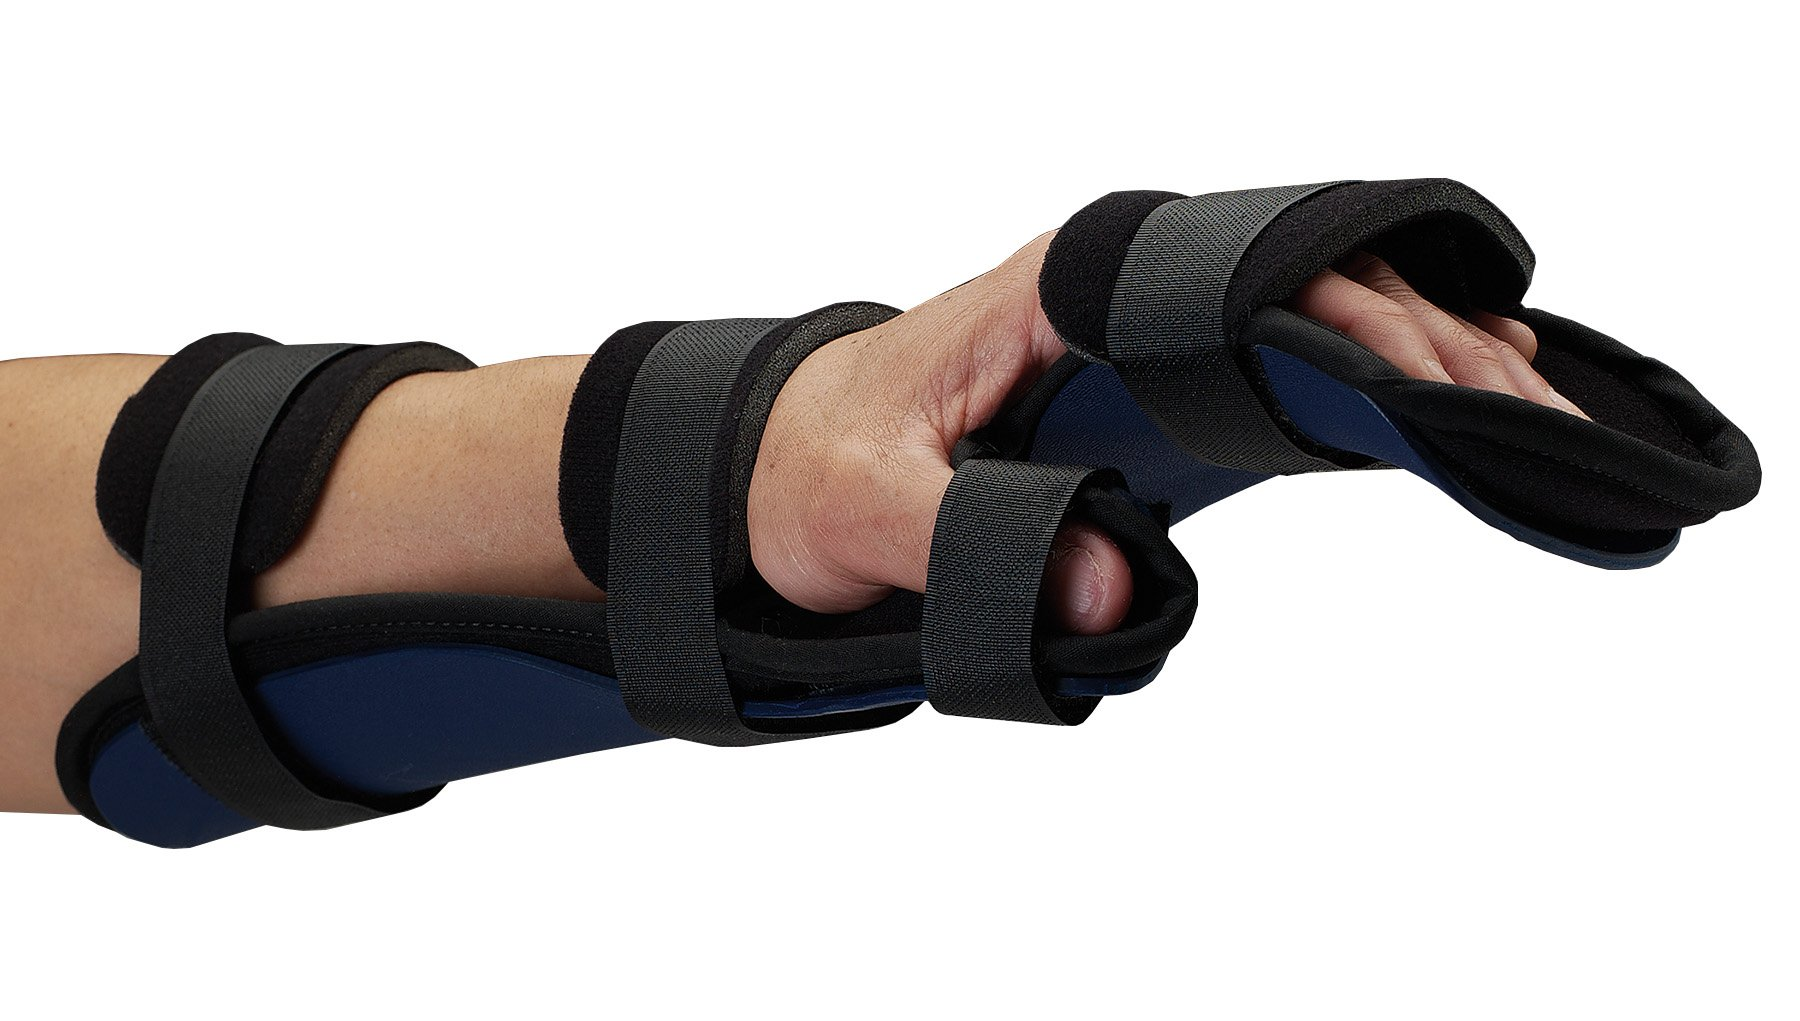 Rolyan Kydex Functional Resting Orthosis for Right Wrist, Wrist Splint for Tendinitis, Inflammation, Carpal Tunnel, Tendonitis, Wrist Splint & Forearm Support and Alignment, Requires Heat Gun, Small